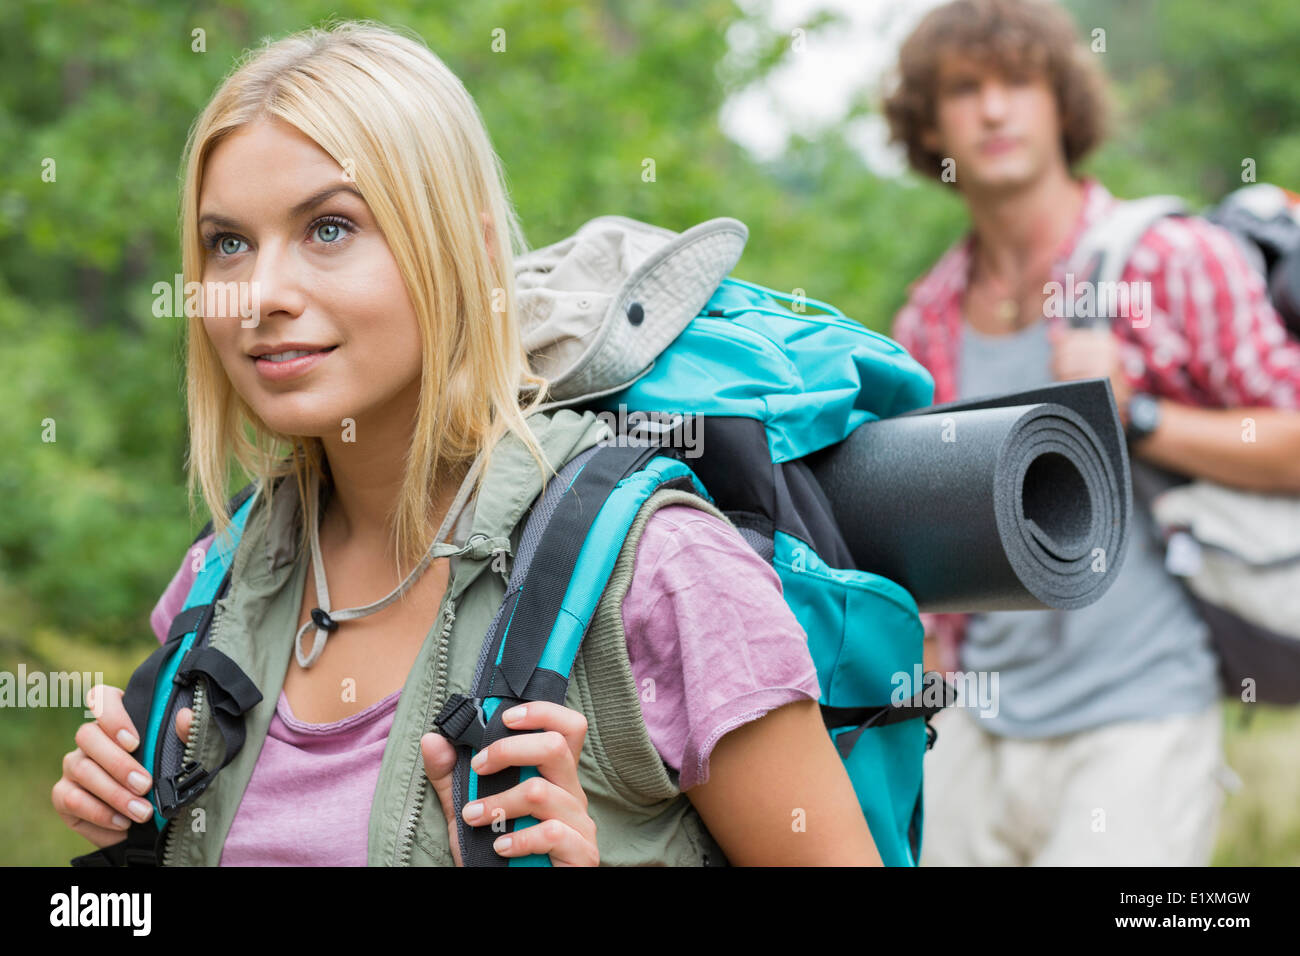 Bellissima femmina backpacker che guarda lontano con uomo in background in foresta Immagini Stock